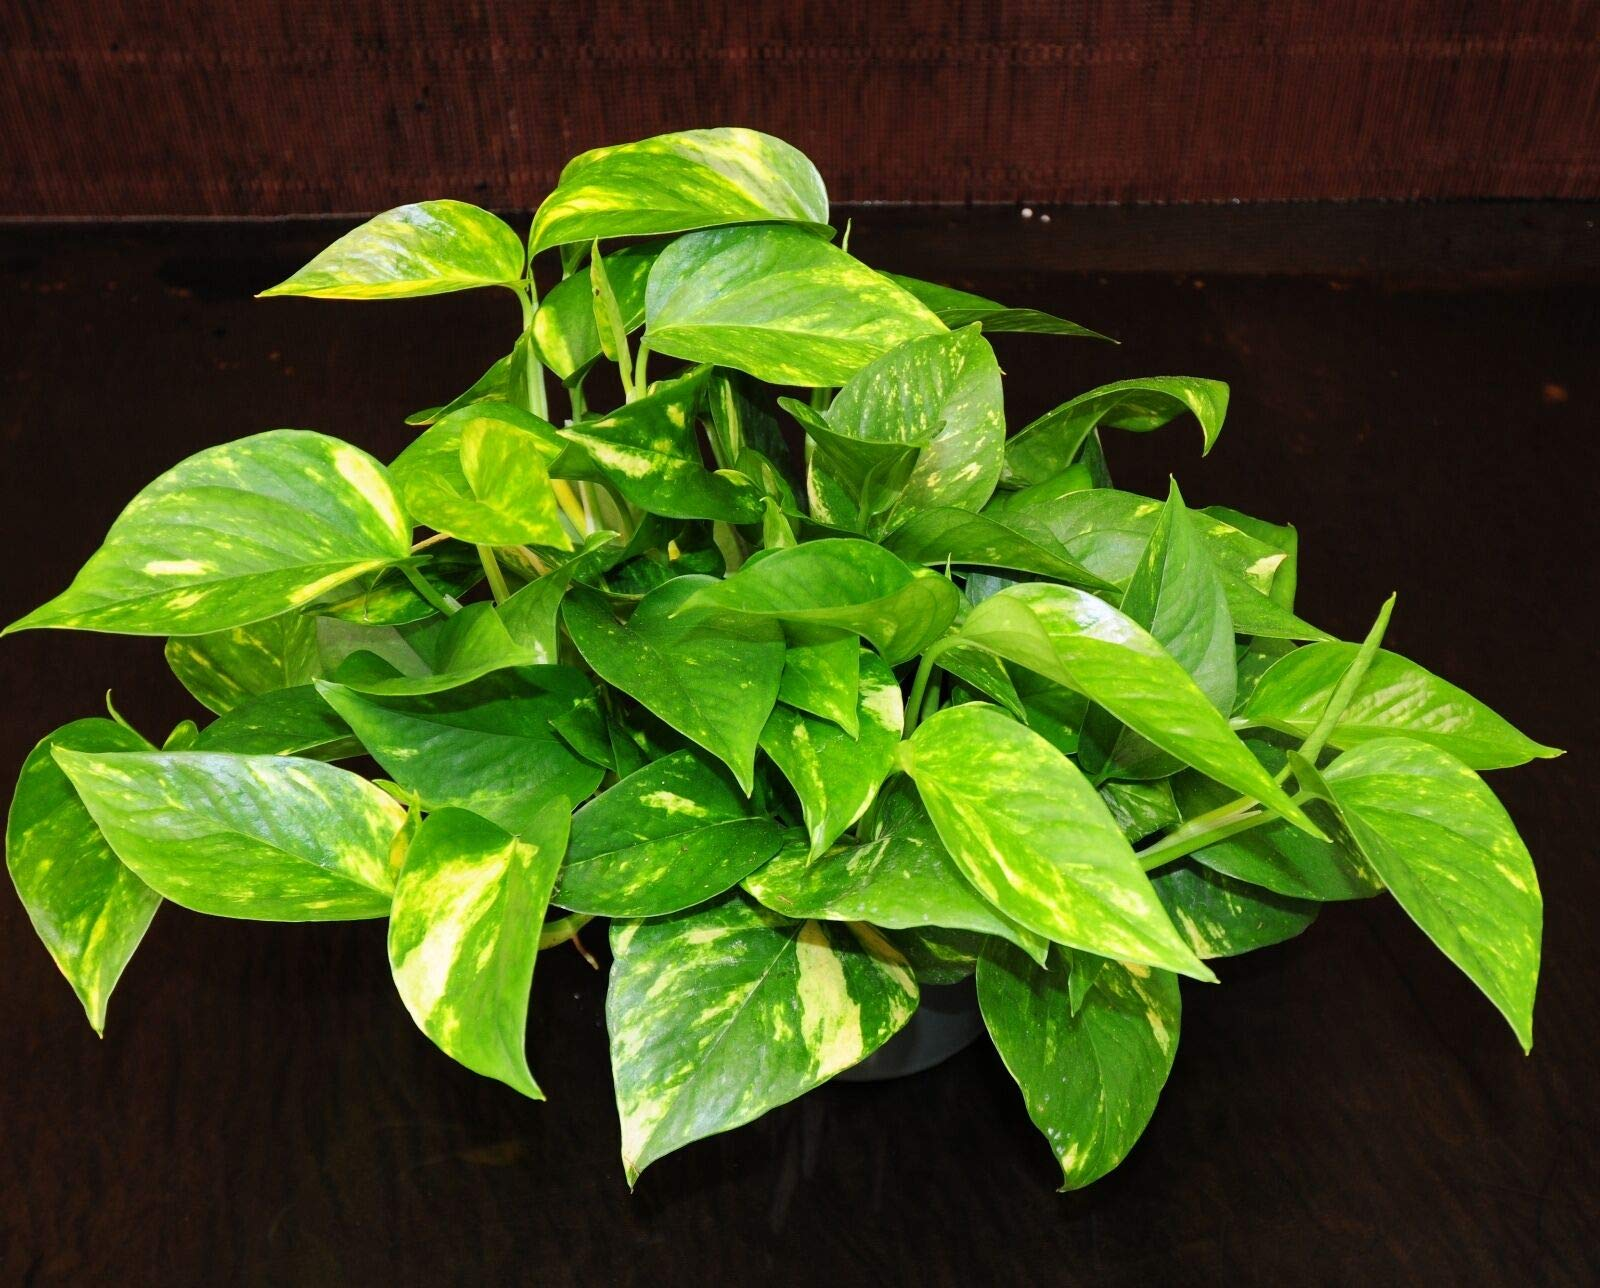 Golden Pothos 6'' Pots Easy Tropical Vining House Plant Super Large & Full (Premium Quality) by AY-Premium